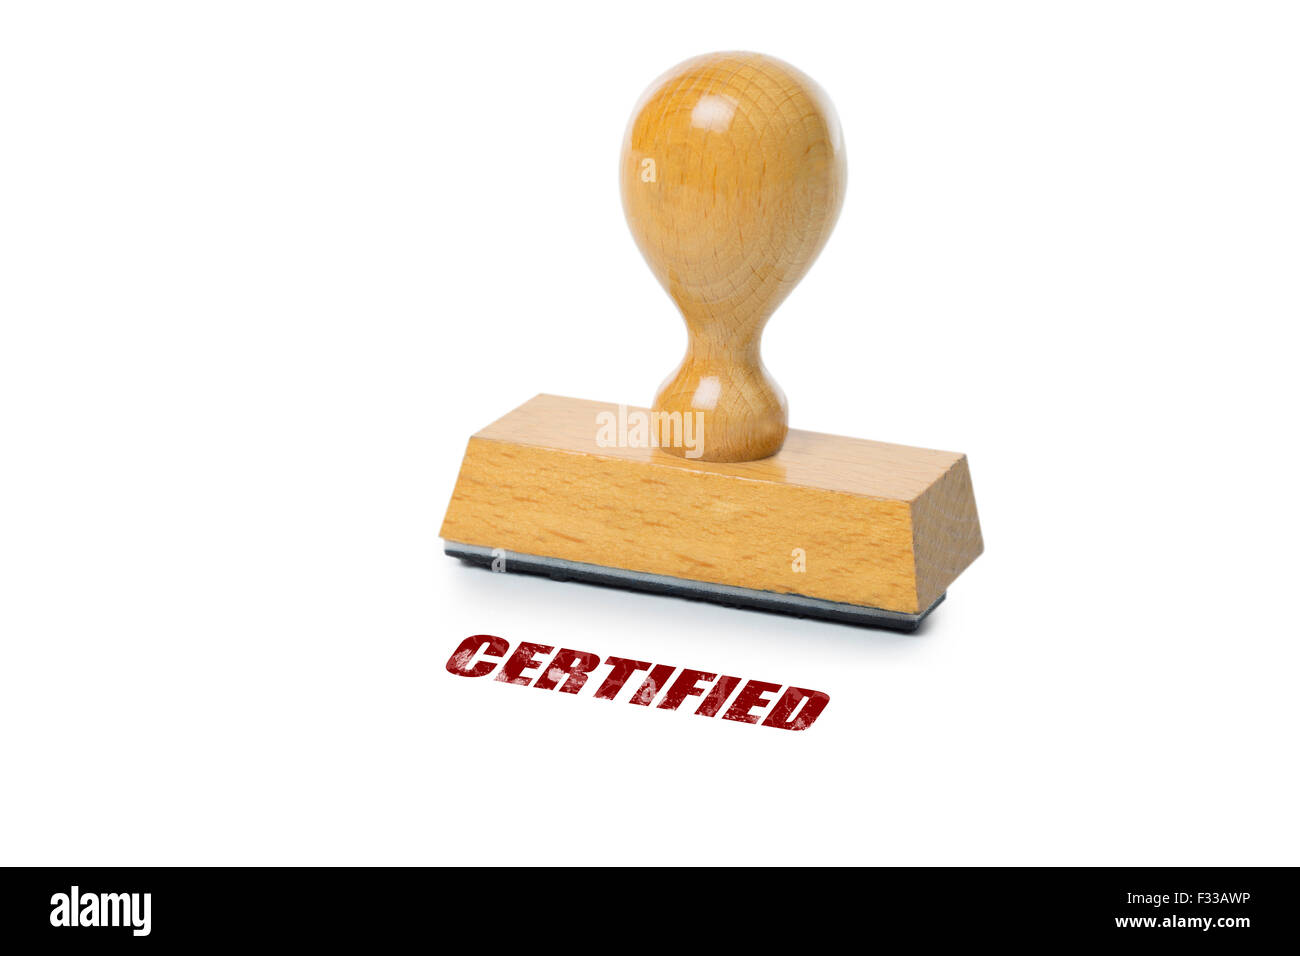 Certified printed in red ink with wooden Rubber stamp isolated on white background Stock Photo